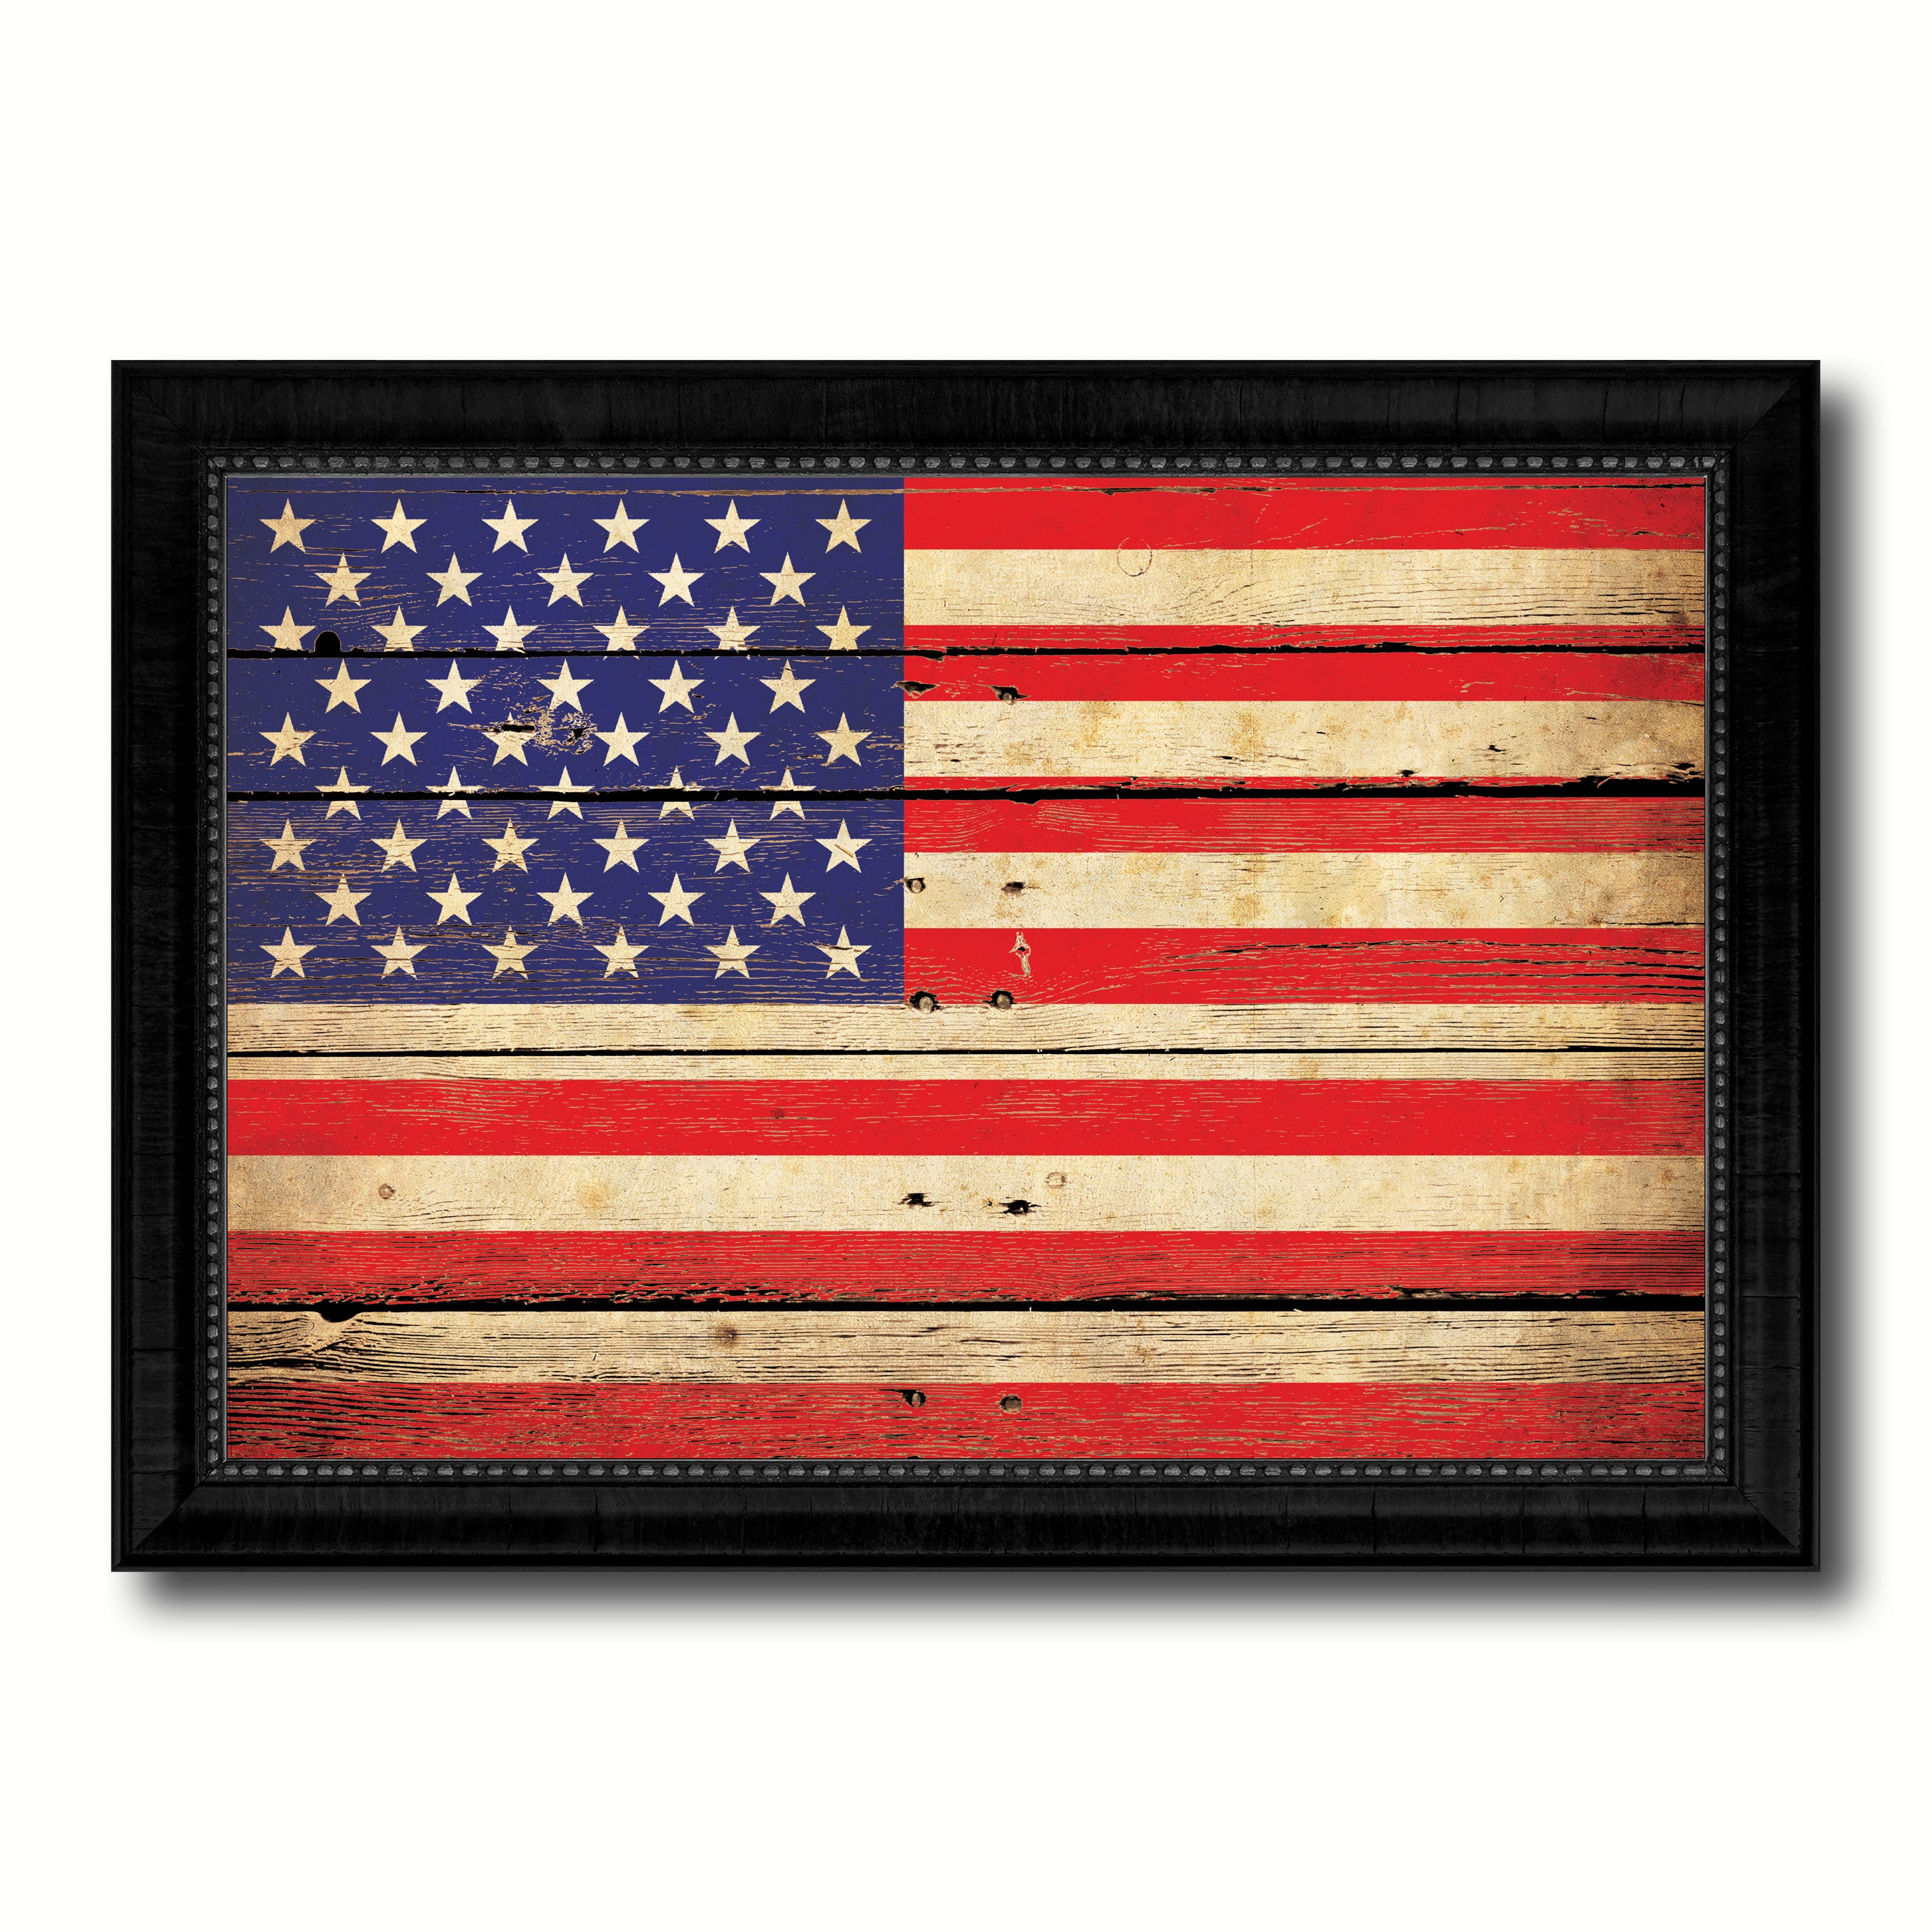 American Flag Vintage Canvas Print with Black Picture Frame Home Decor Man Cave Wall Art Collectible Decoration Artwork Gifts